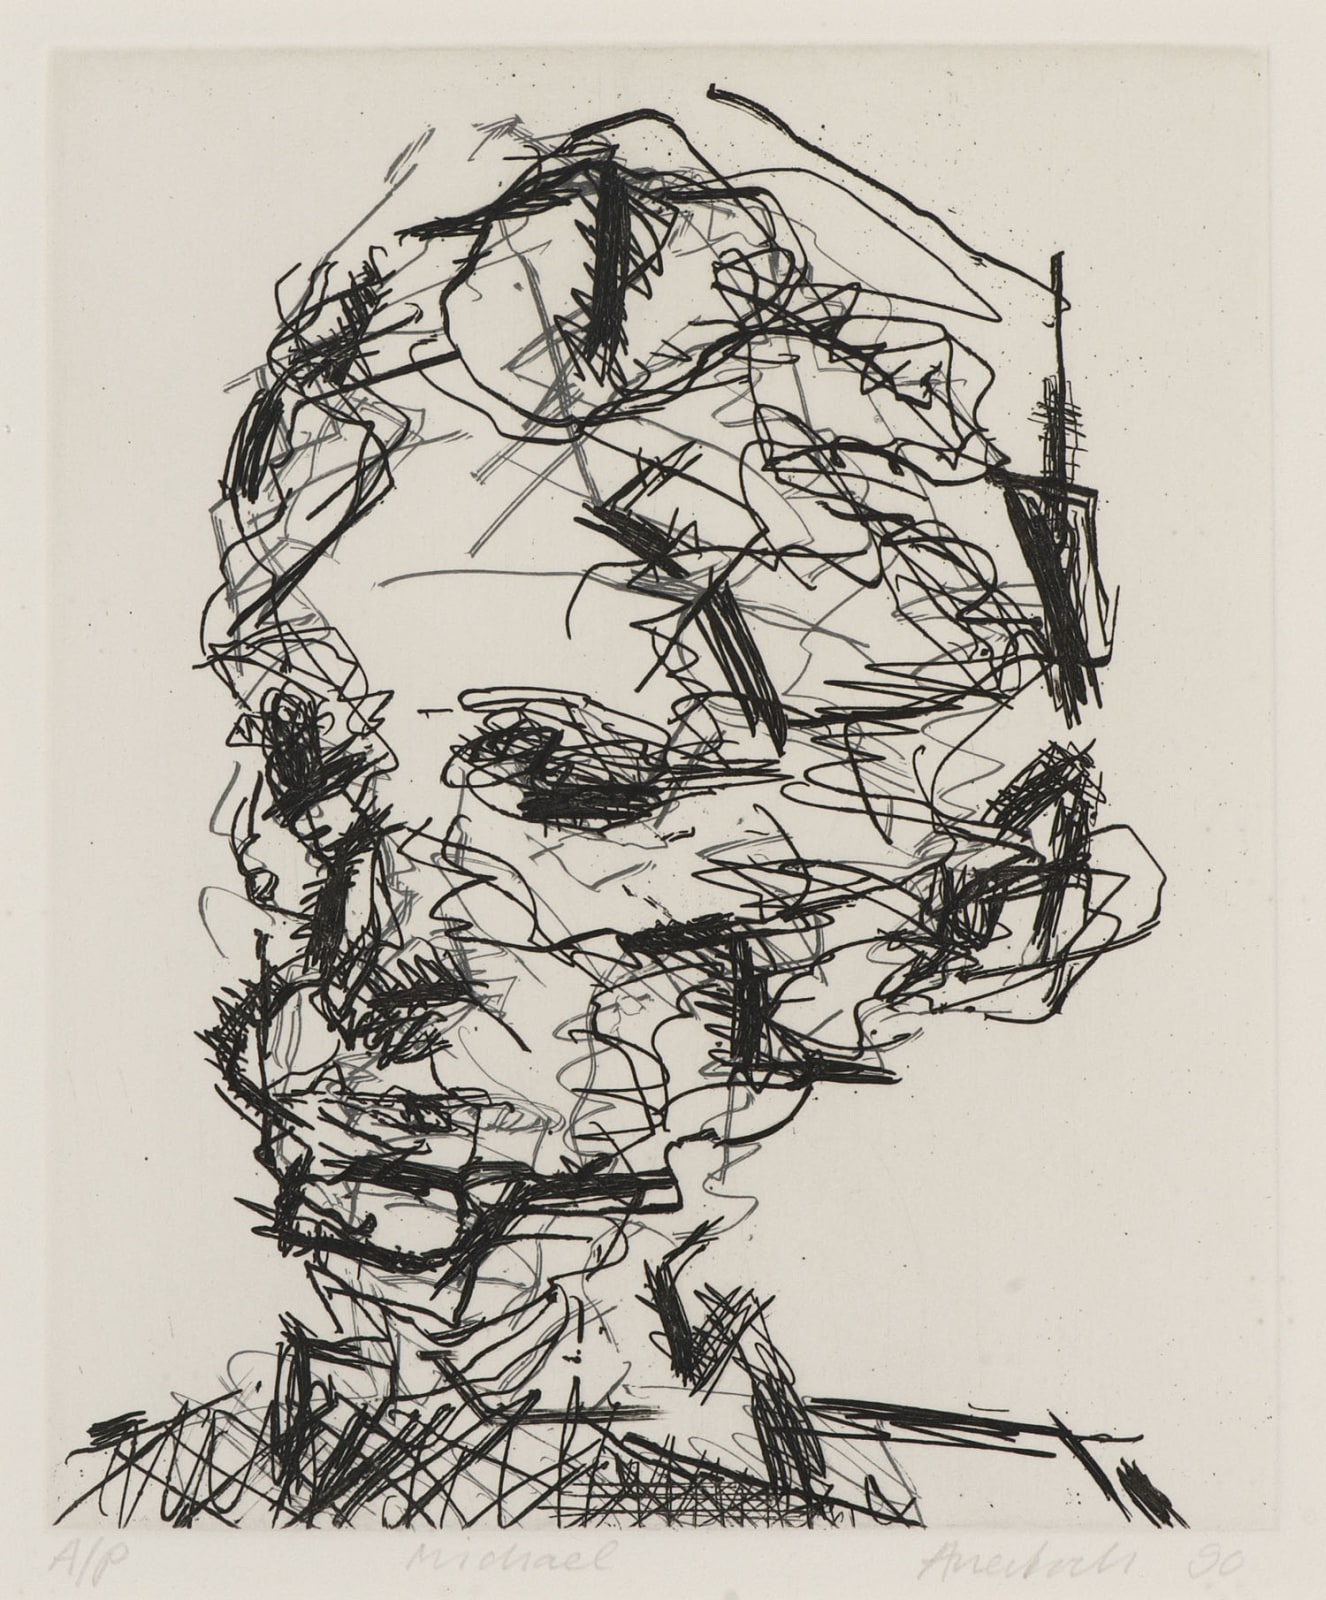 Frank Auerbach (1931-) Michael, Part of Seven Portarits 1990 Etching, printed on Somerset white paper, artist's proof outside the published edition of 50 20 x 16.5 cm Ben Uri Collection © Frank Auerbach, courtesy Marlborough Fine Art To see and discover more about this artist click here